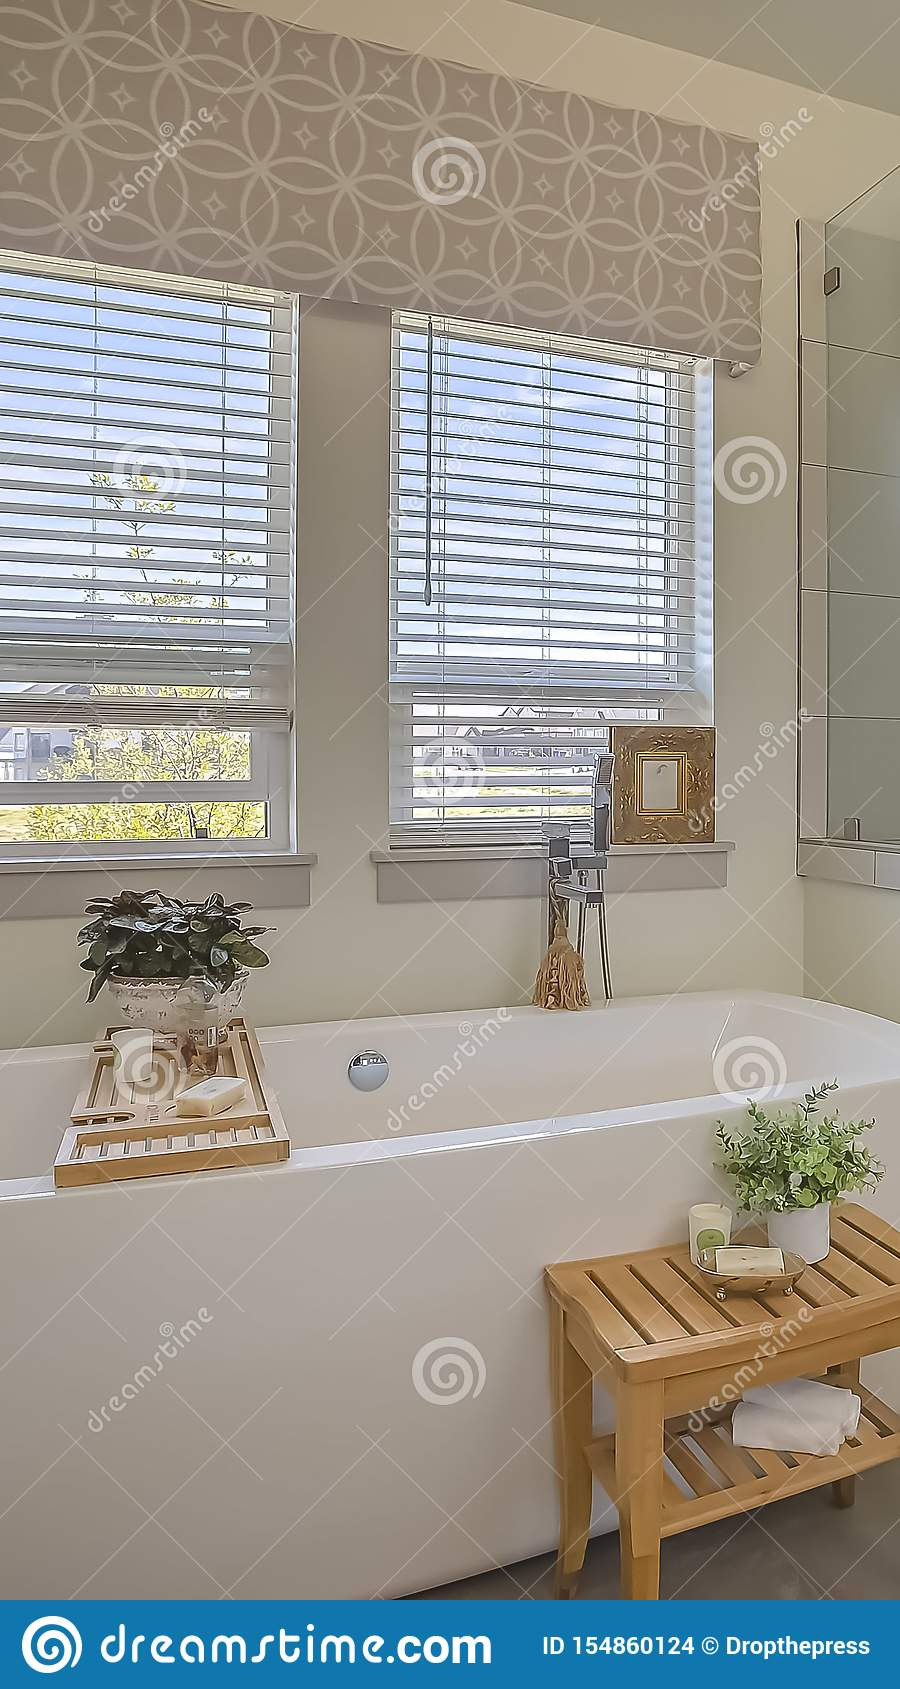 Vertical Bathtub And Shower Stall In Front Of Windows With Valance And Blinds Stock Photo Image Of Indoor Bathtub 154860124